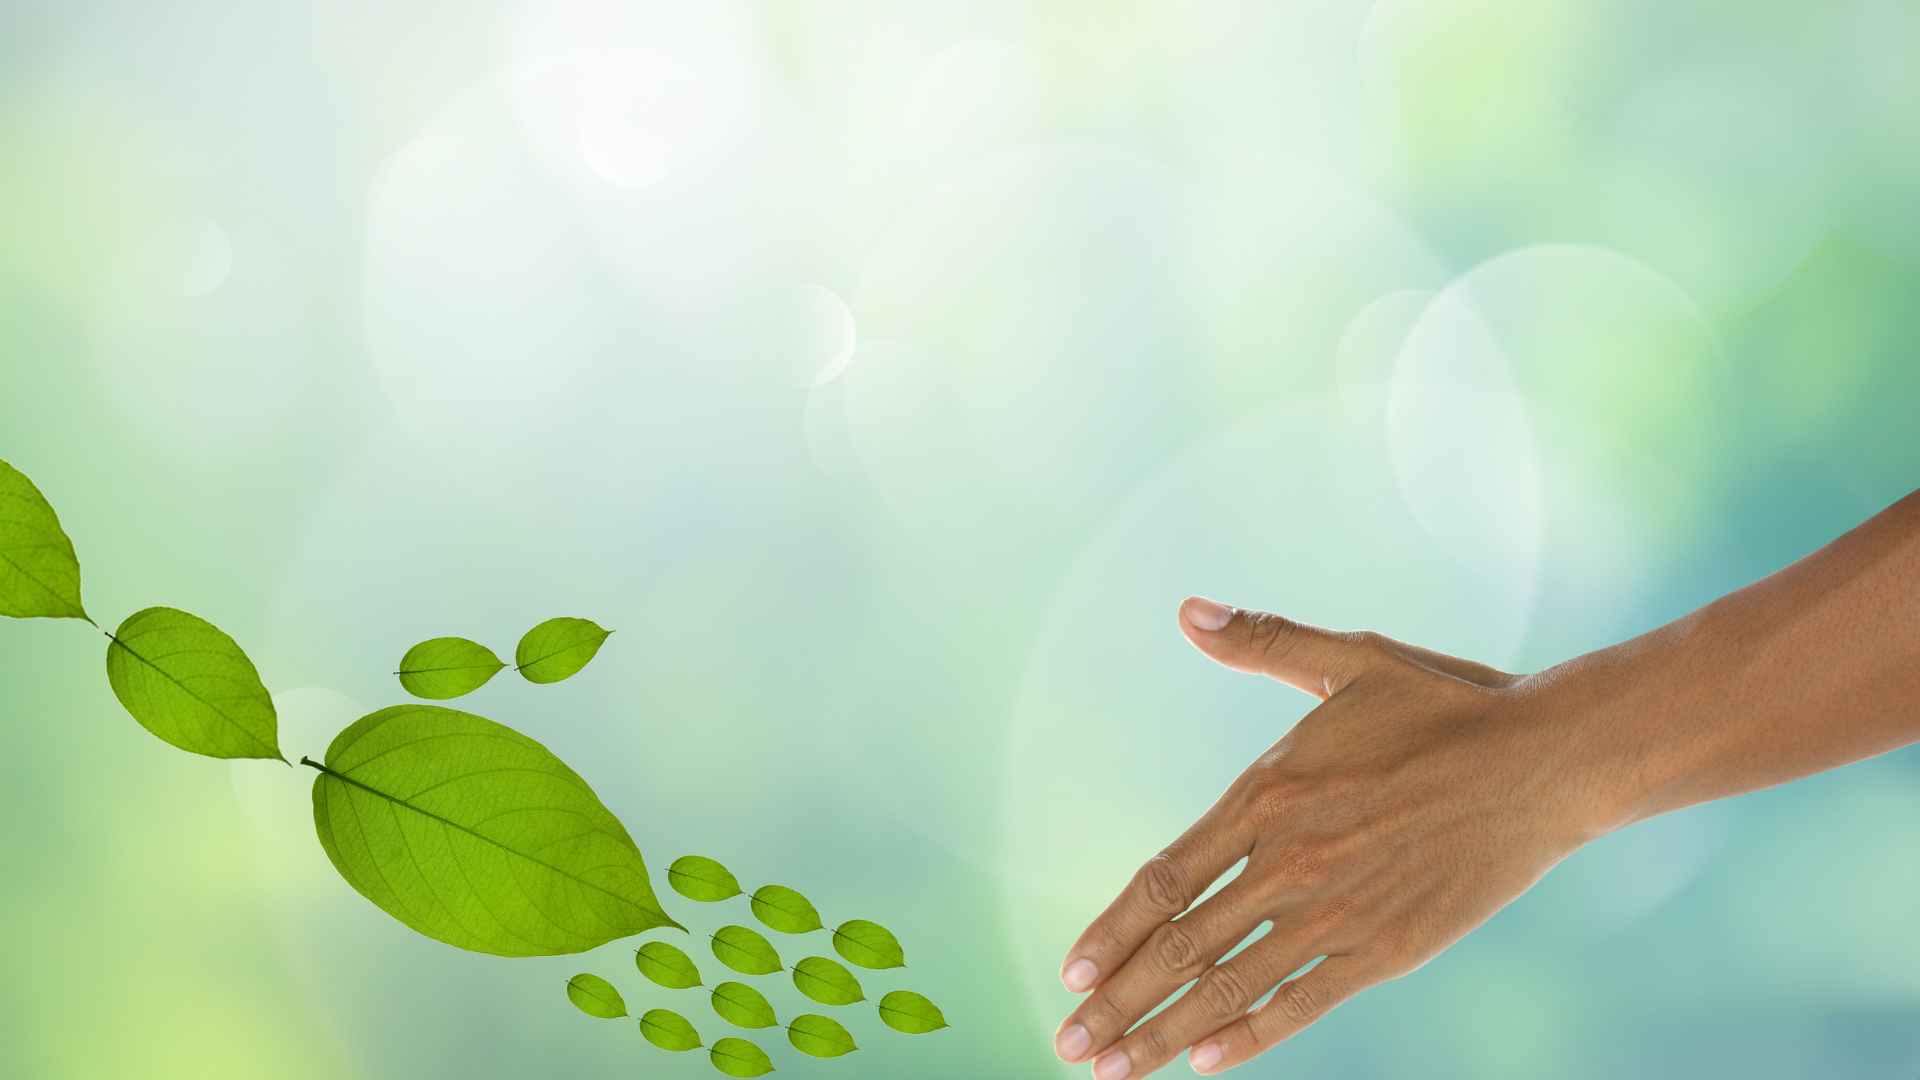 Ways To Make Your Small Business More Environmentally Friendly here.